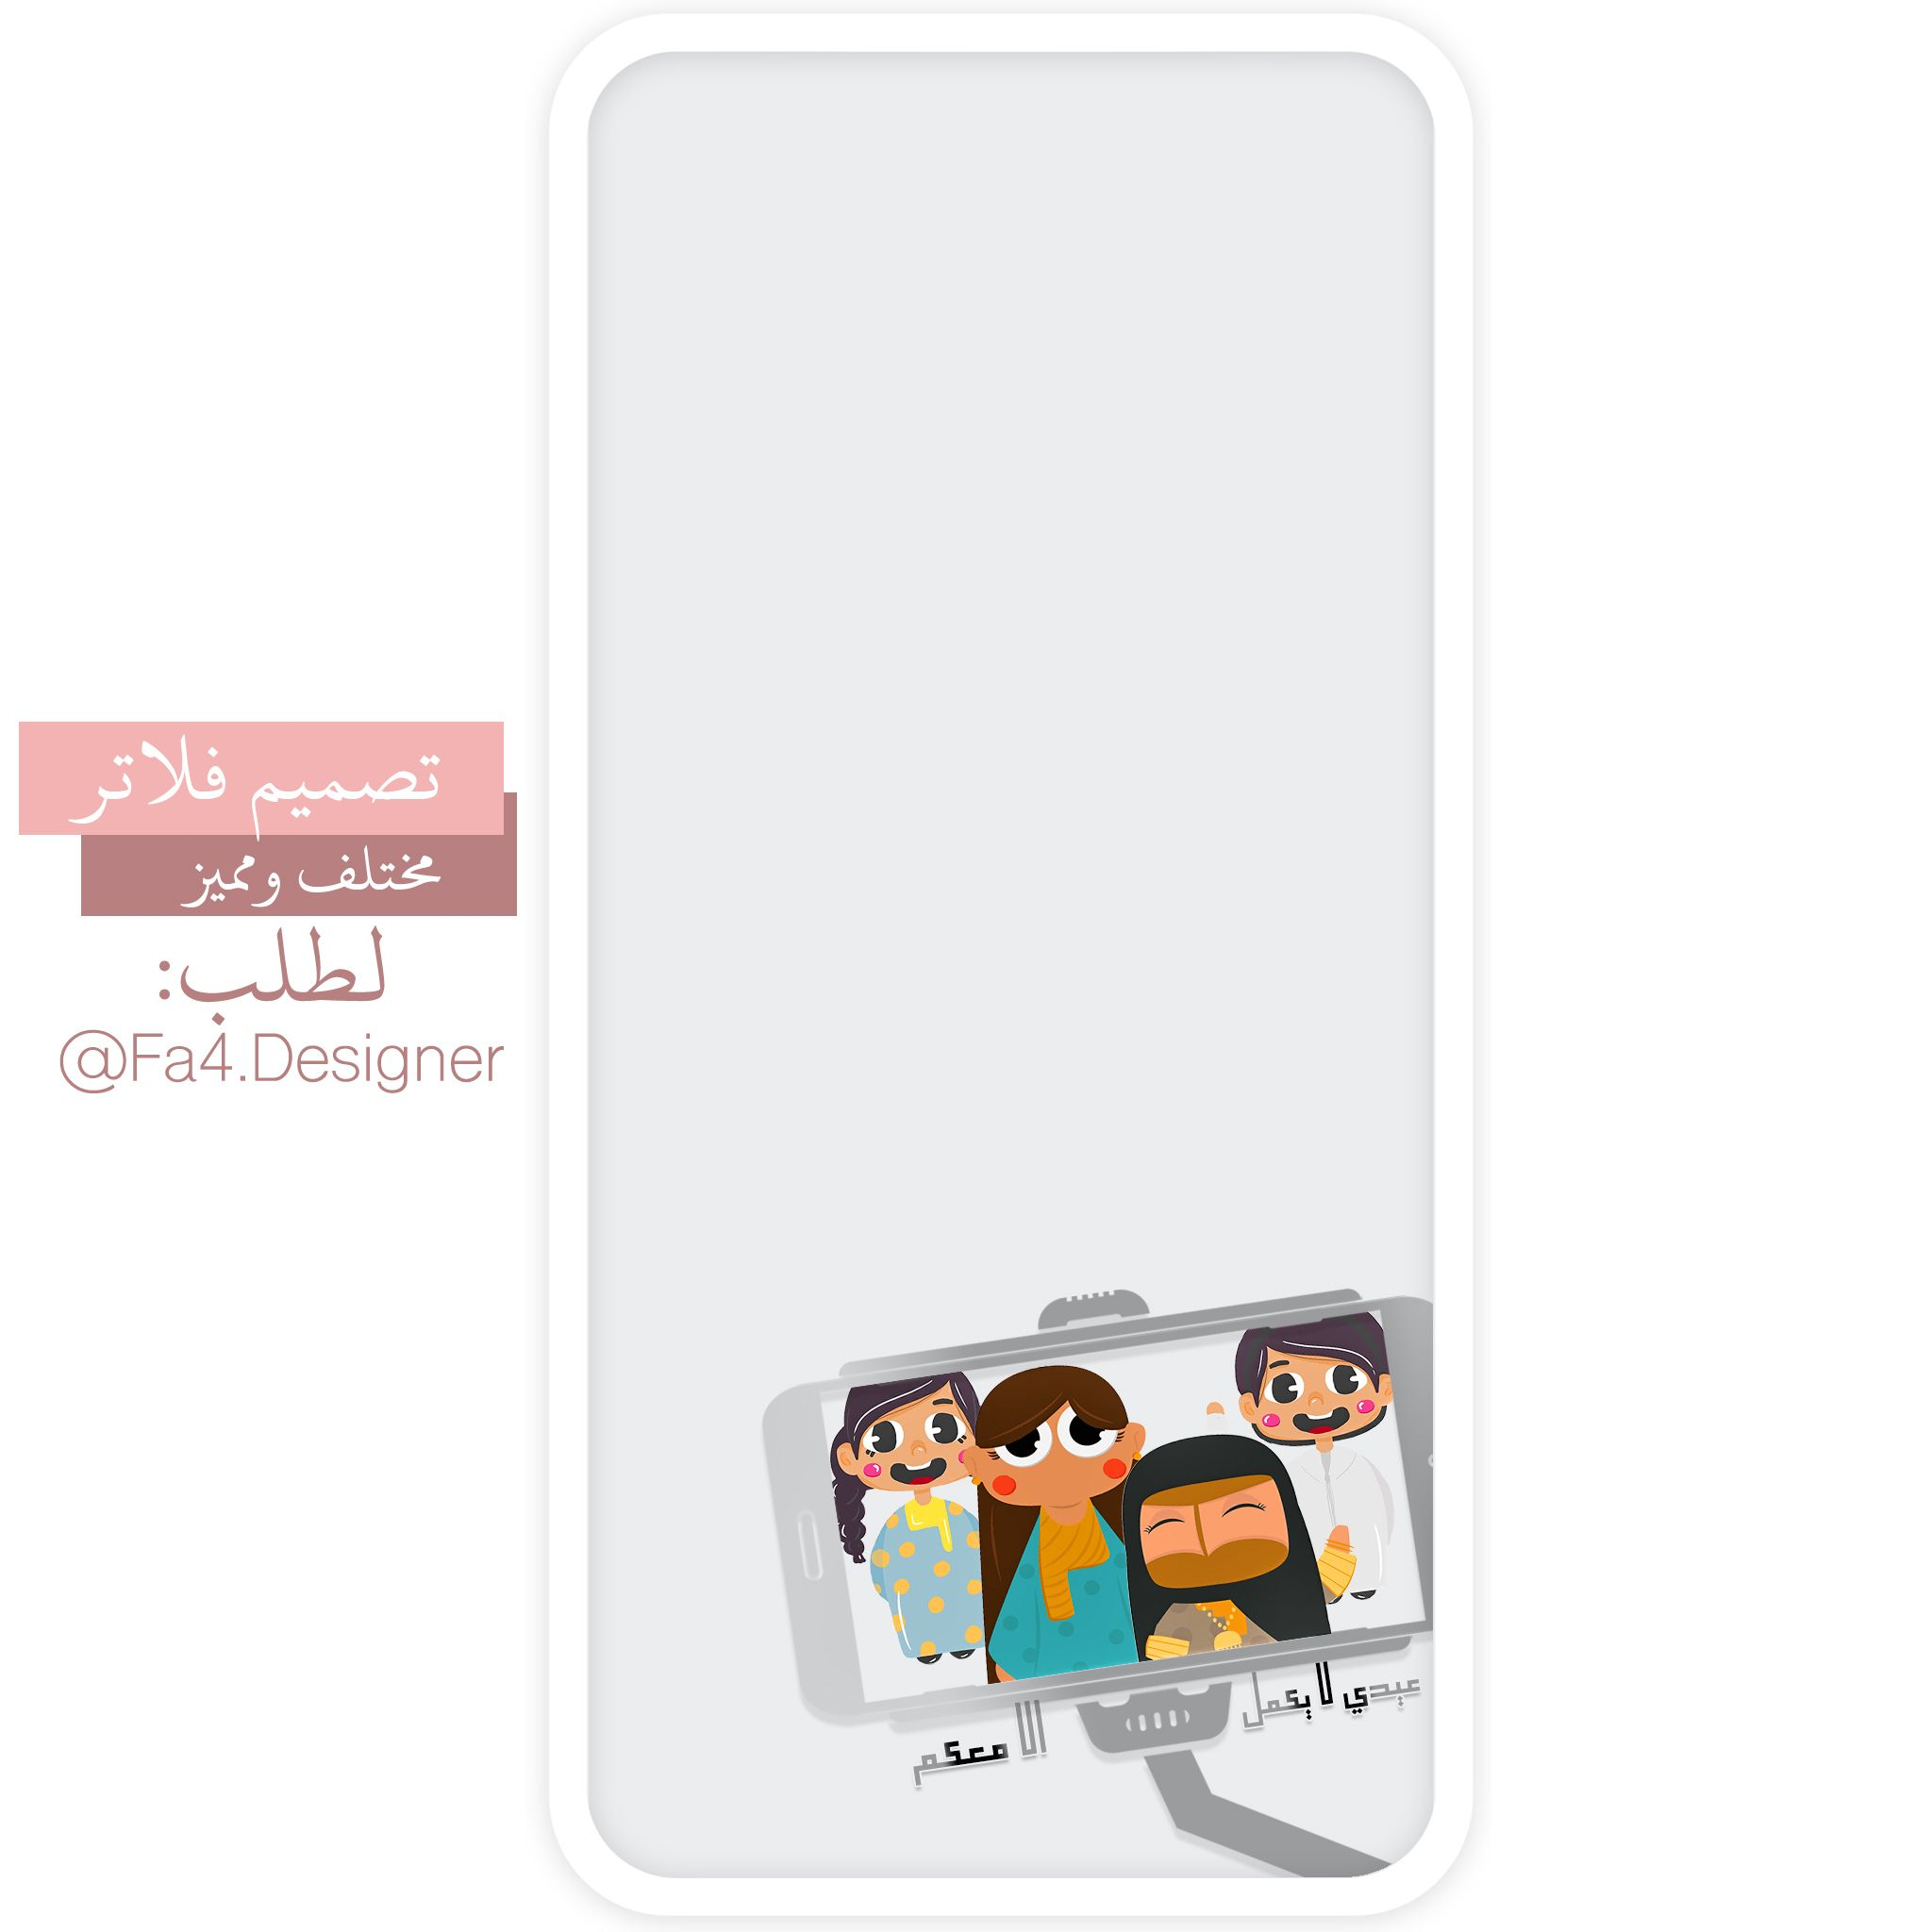 Pin By سناب شات فلتر On Design Design Electronic Products